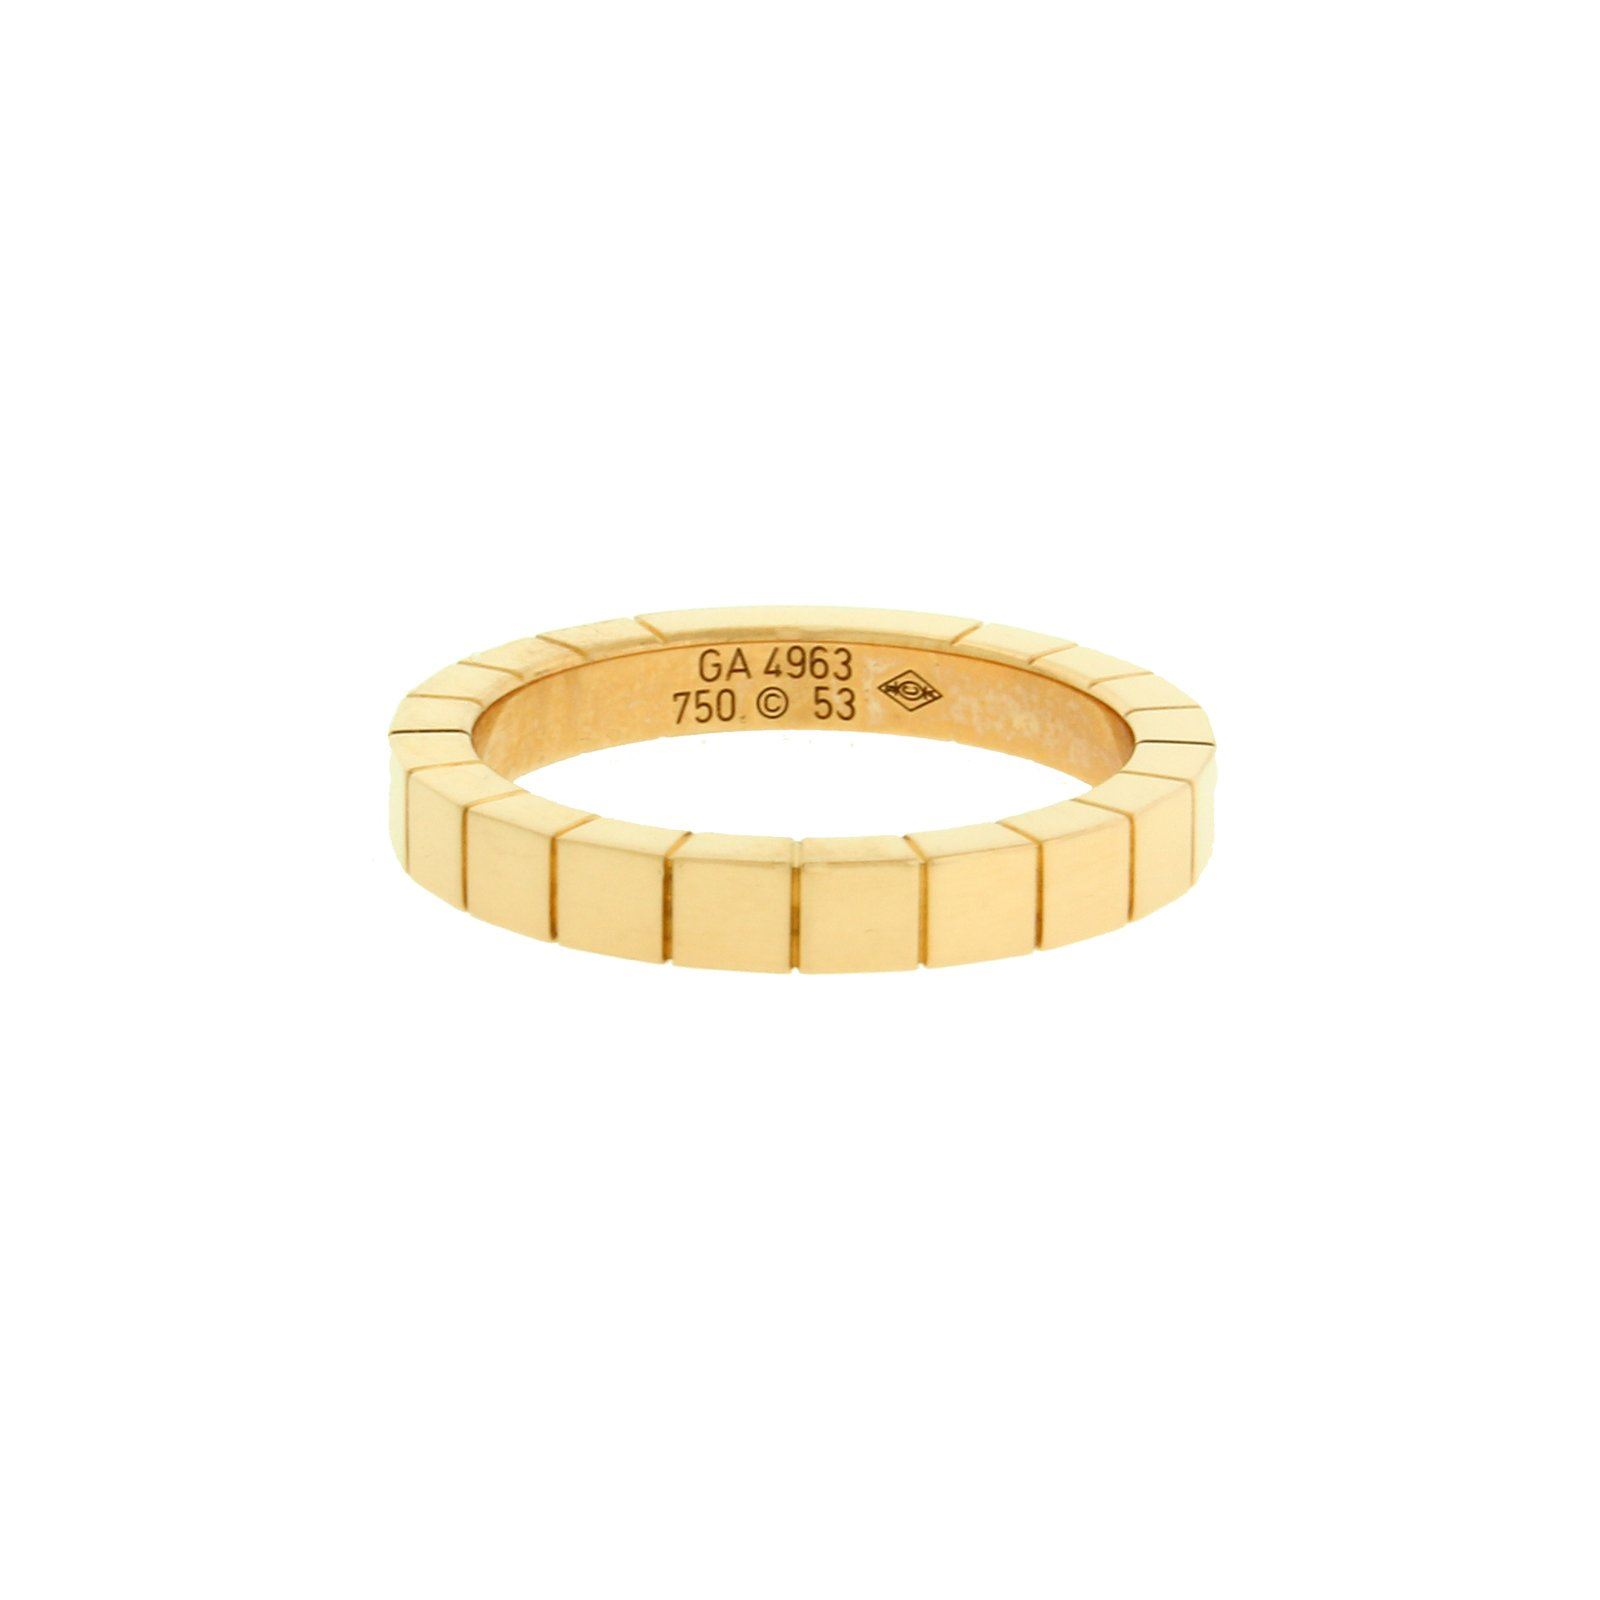 f7b9ab1c081 Details about Cartier Lanieres 18k yellow gold band ring size 52 (US 6)